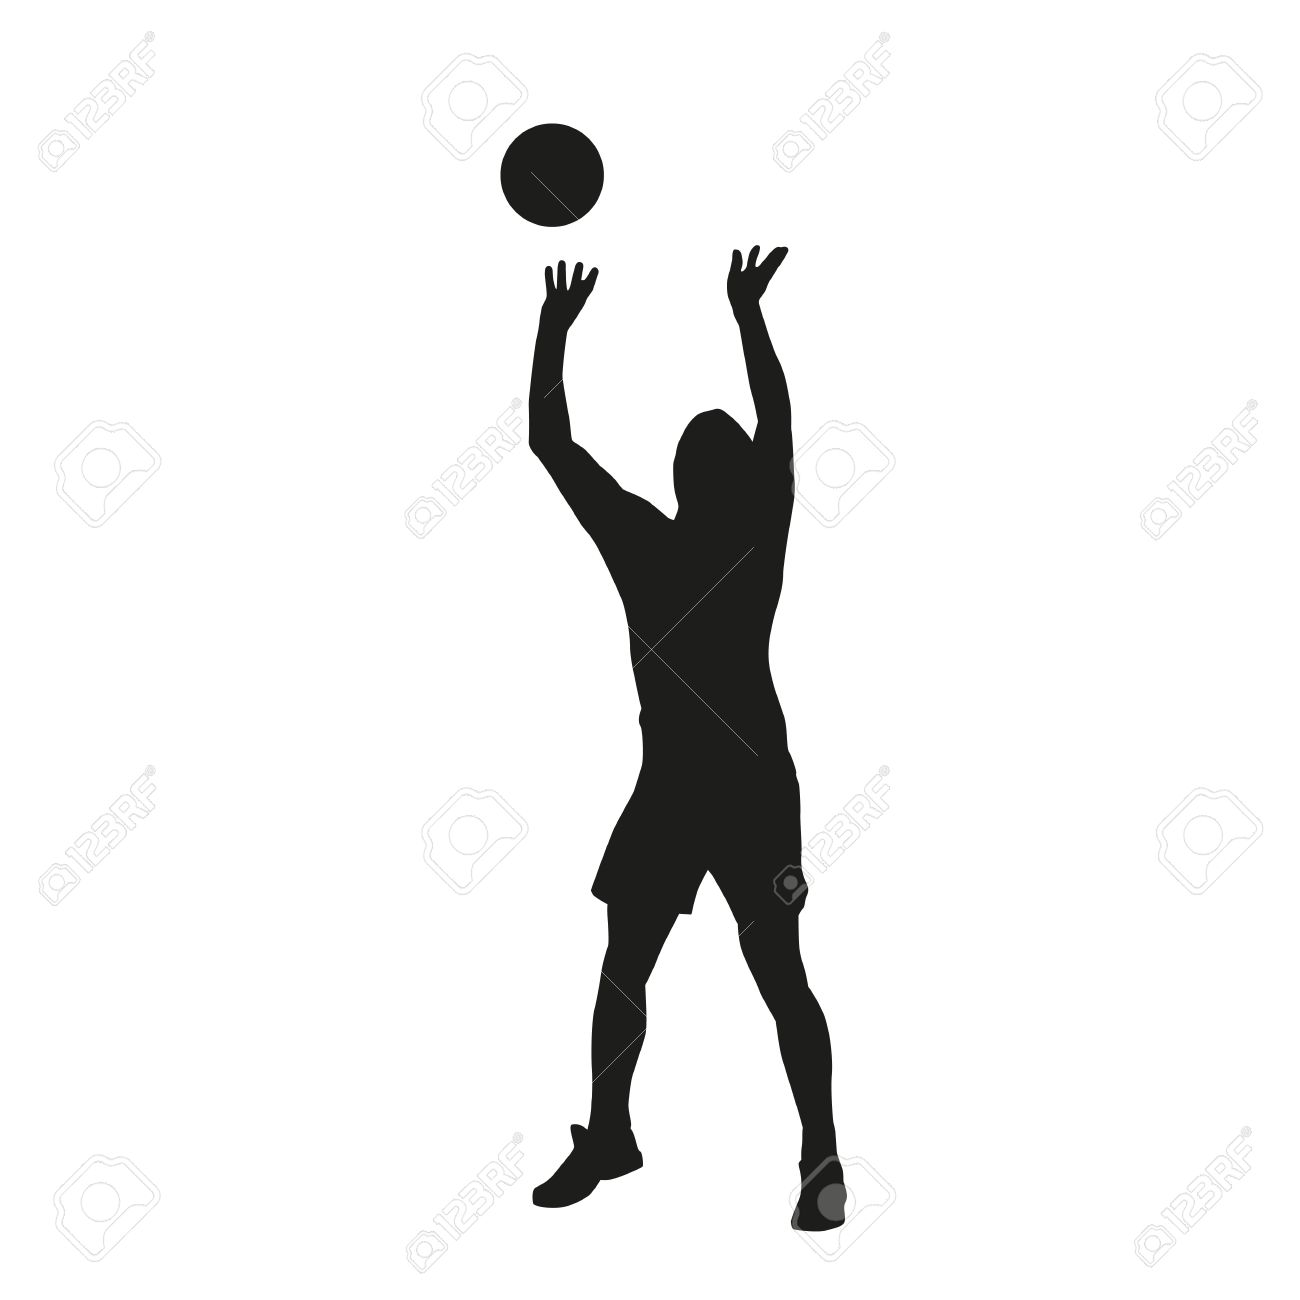 Volleyball player silhouette.